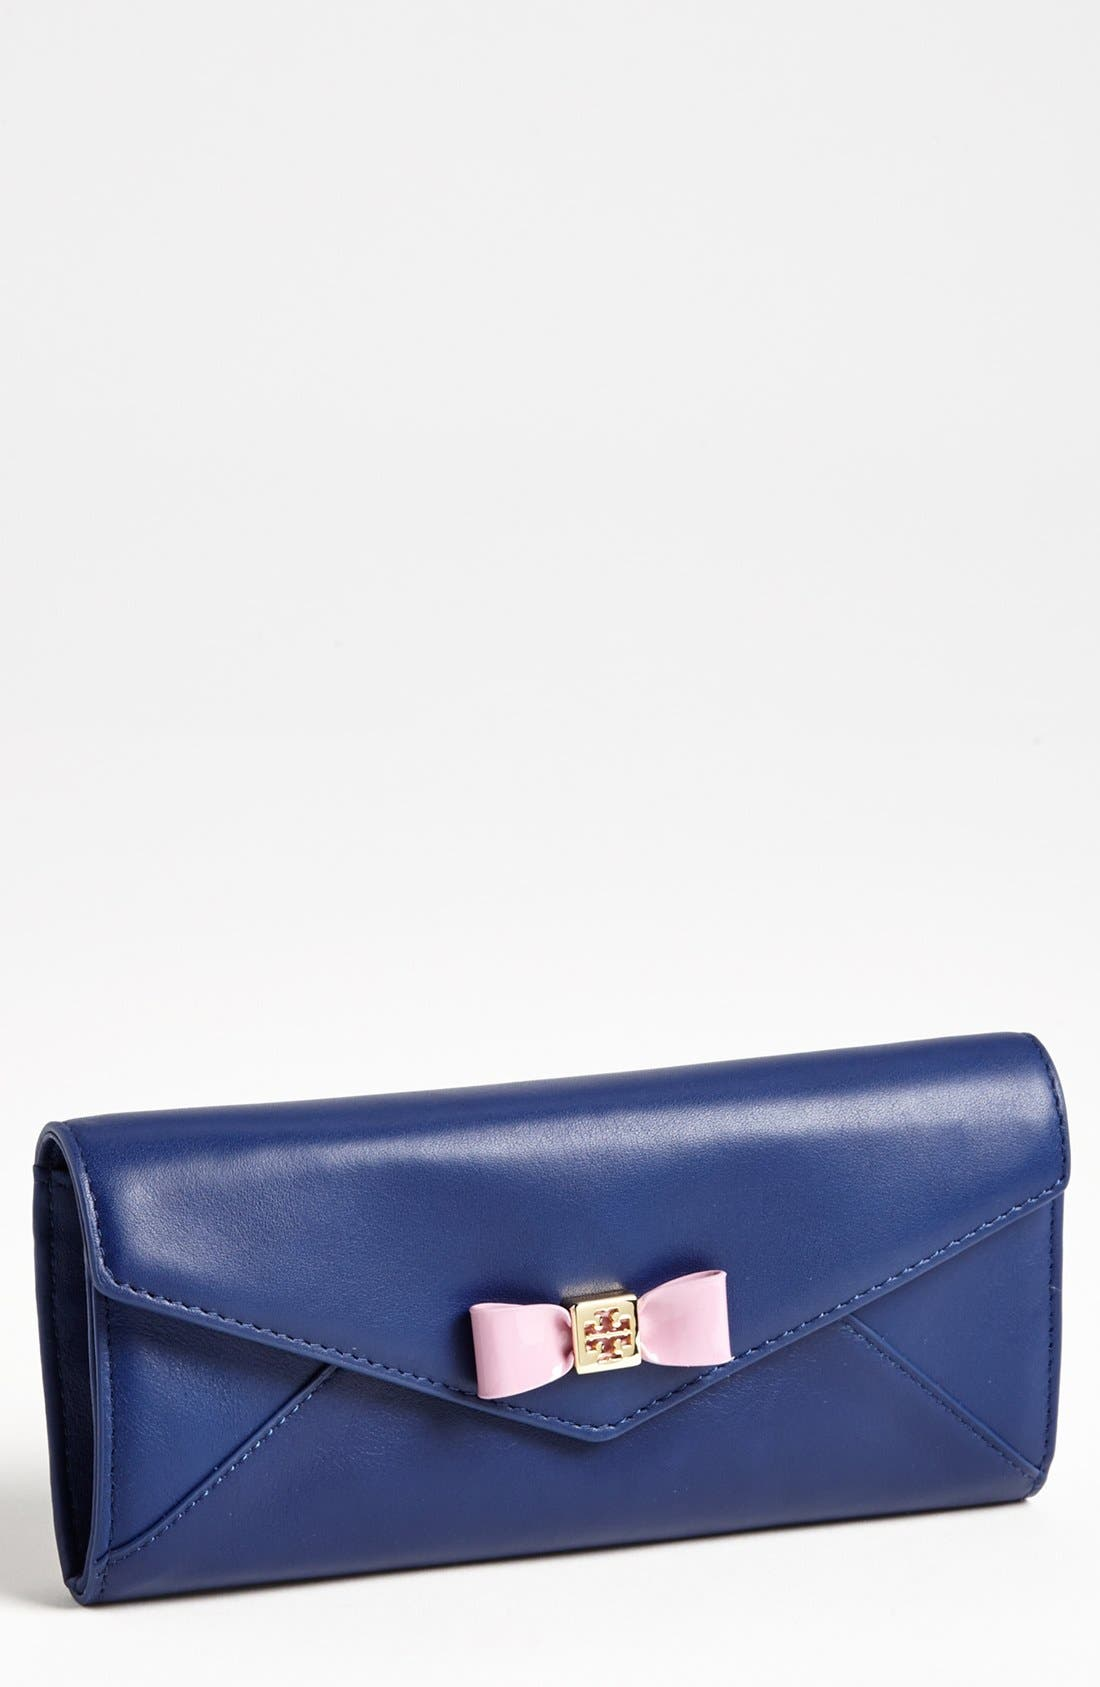 Alternate Image 1 Selected - Tory Burch 'Bow' Envelope Continental Wallet